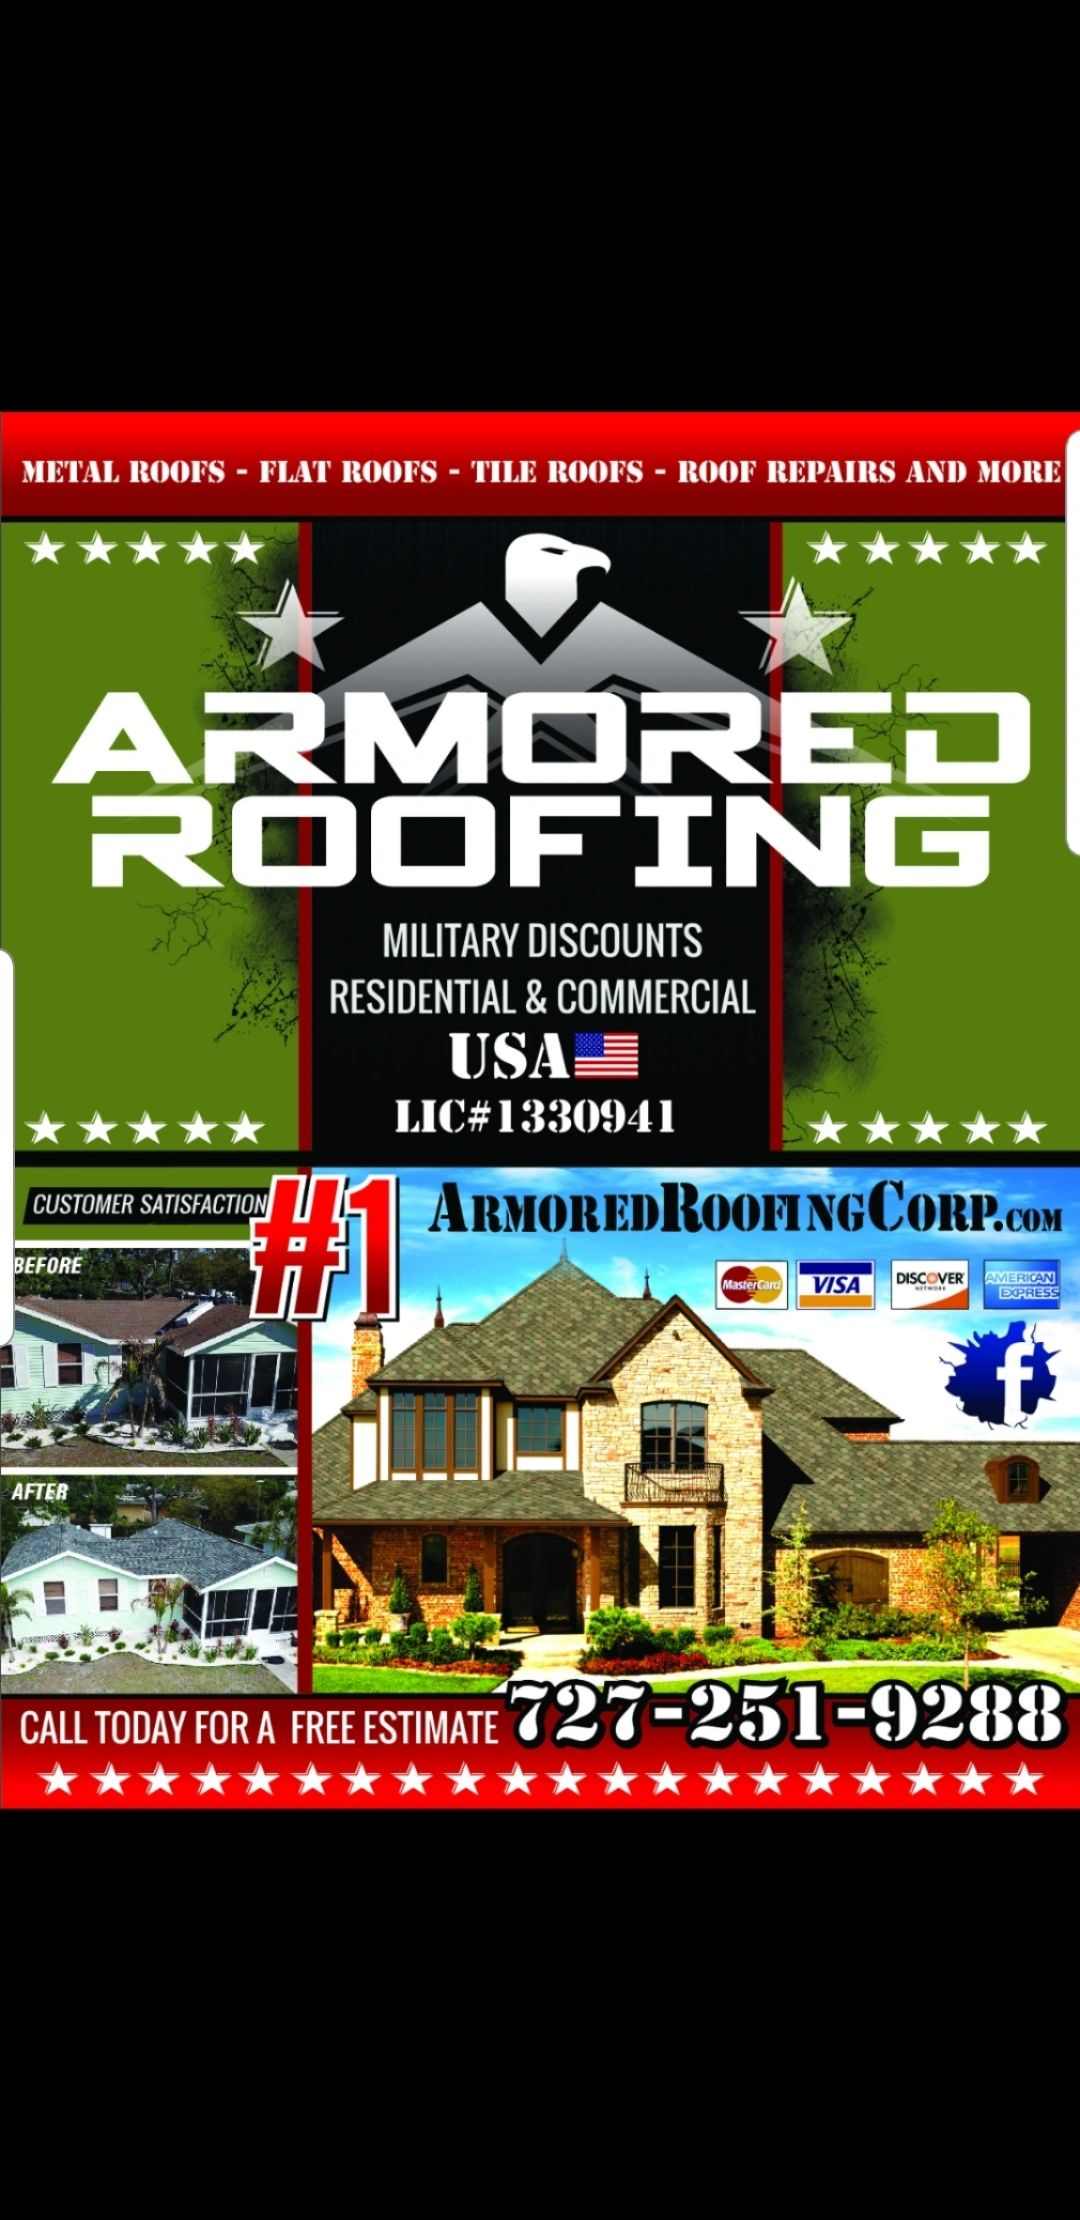 Armored Roofing